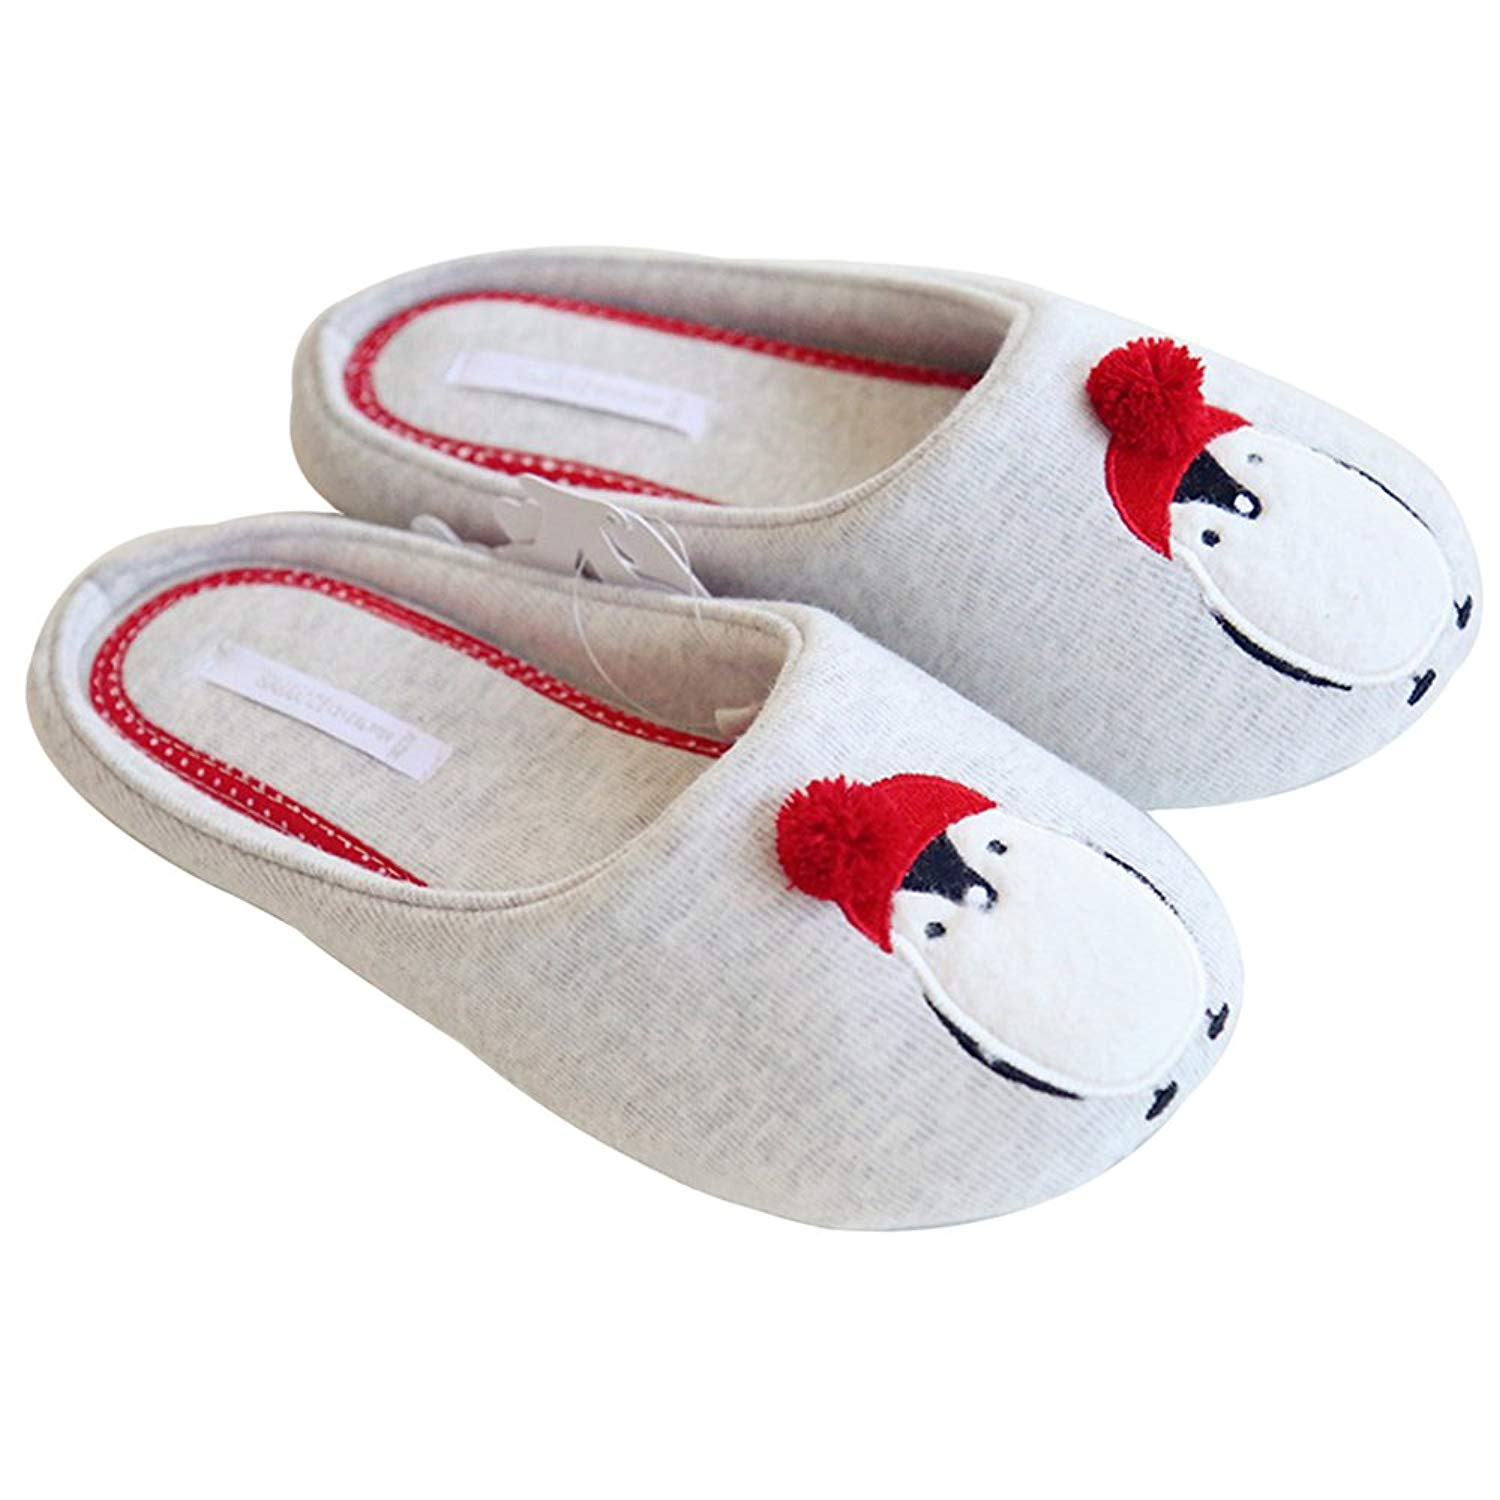 14e2a899cfd38 Get Quotations · ChicPro Winter Soft Christmas House Slippers Cute Penguin  Slip on Bedroom Slippers for Women